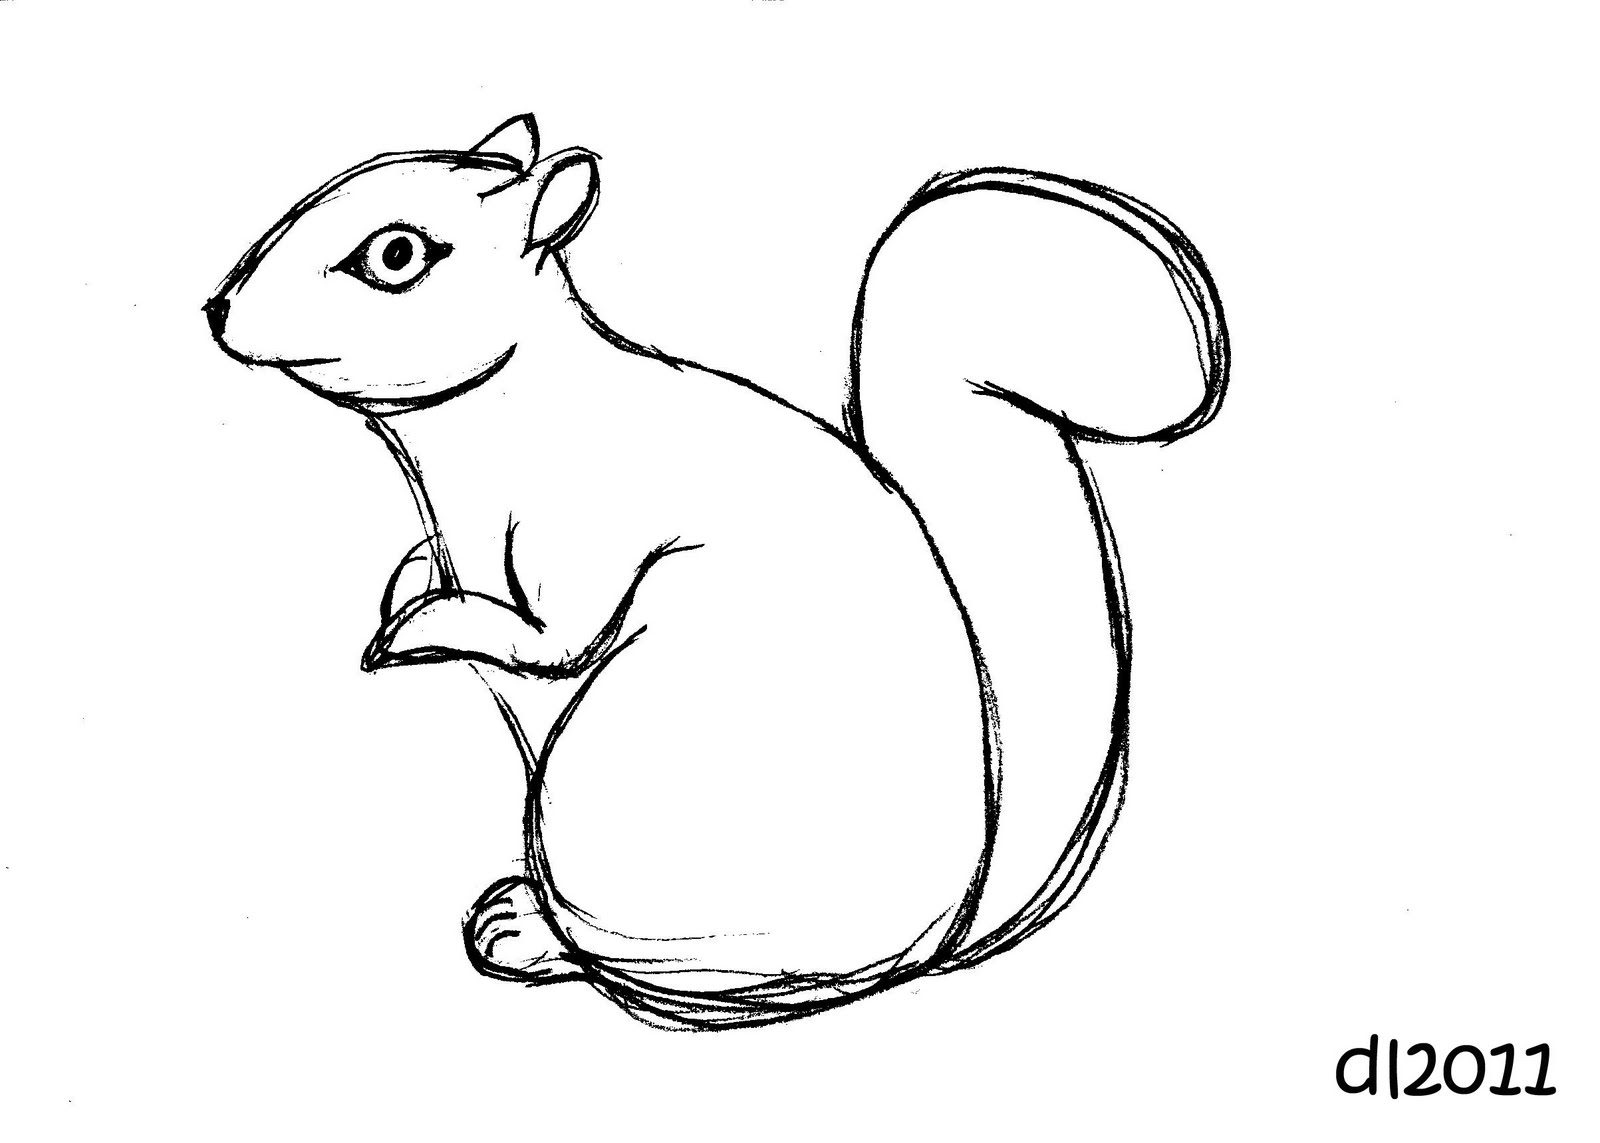 Drawn rodent rodent Images Clipart Panda Squirrel Clipart